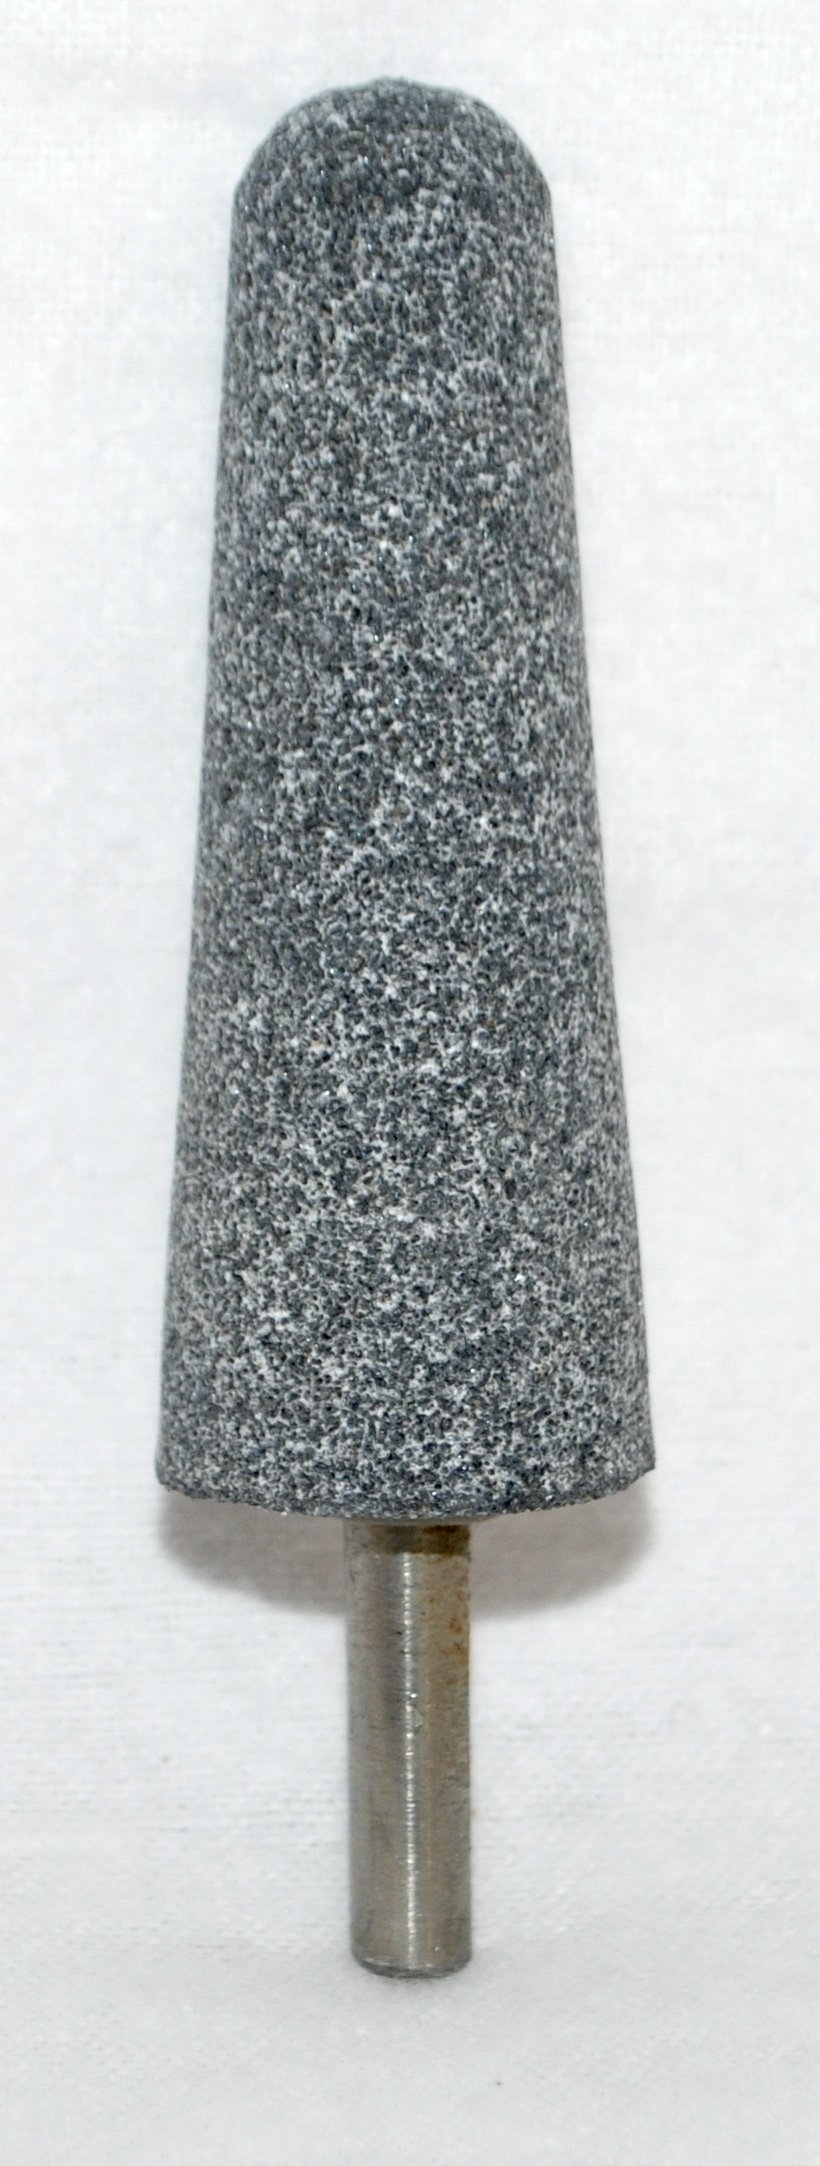 Lot of 5 Large 2 3/4'' A-3 Cone Mounted Point Fine Grit Abrasive Grinding Stone Bit with 1/4'' Shank (5)